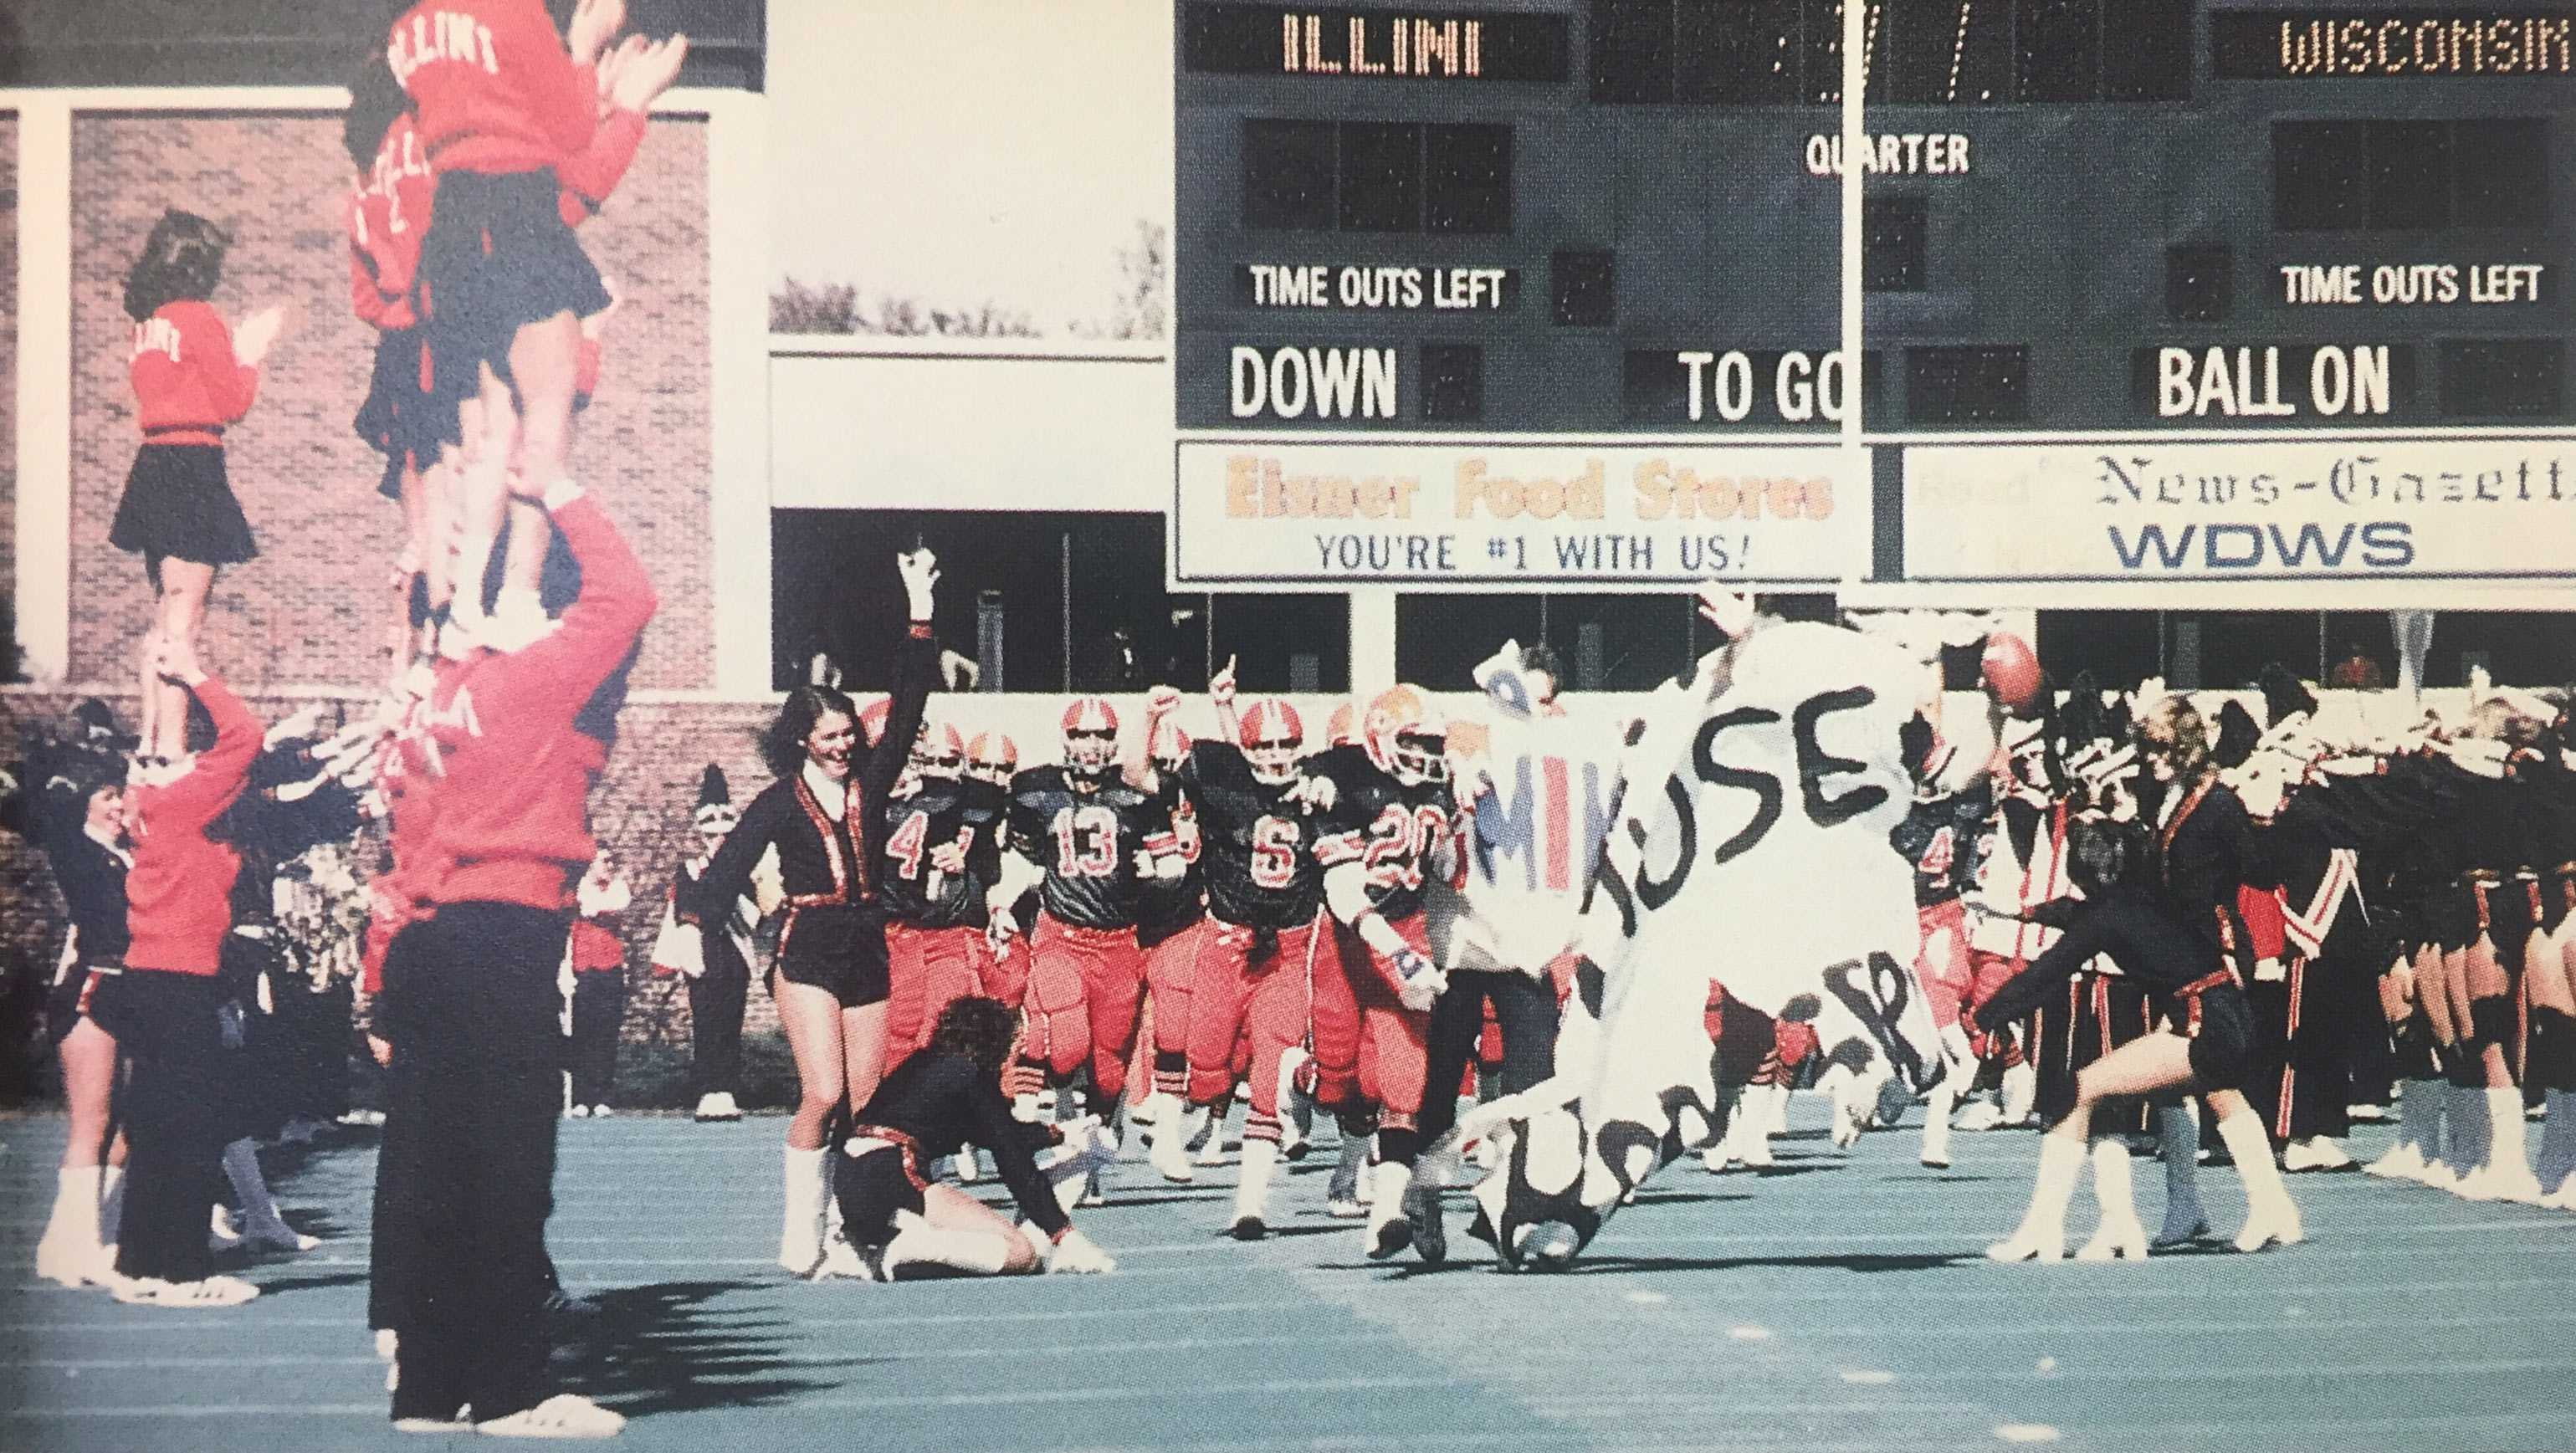 The Illini break through a banner at the 1981 Homecoming football game while the cheerleading squad encourages the football team from the side.